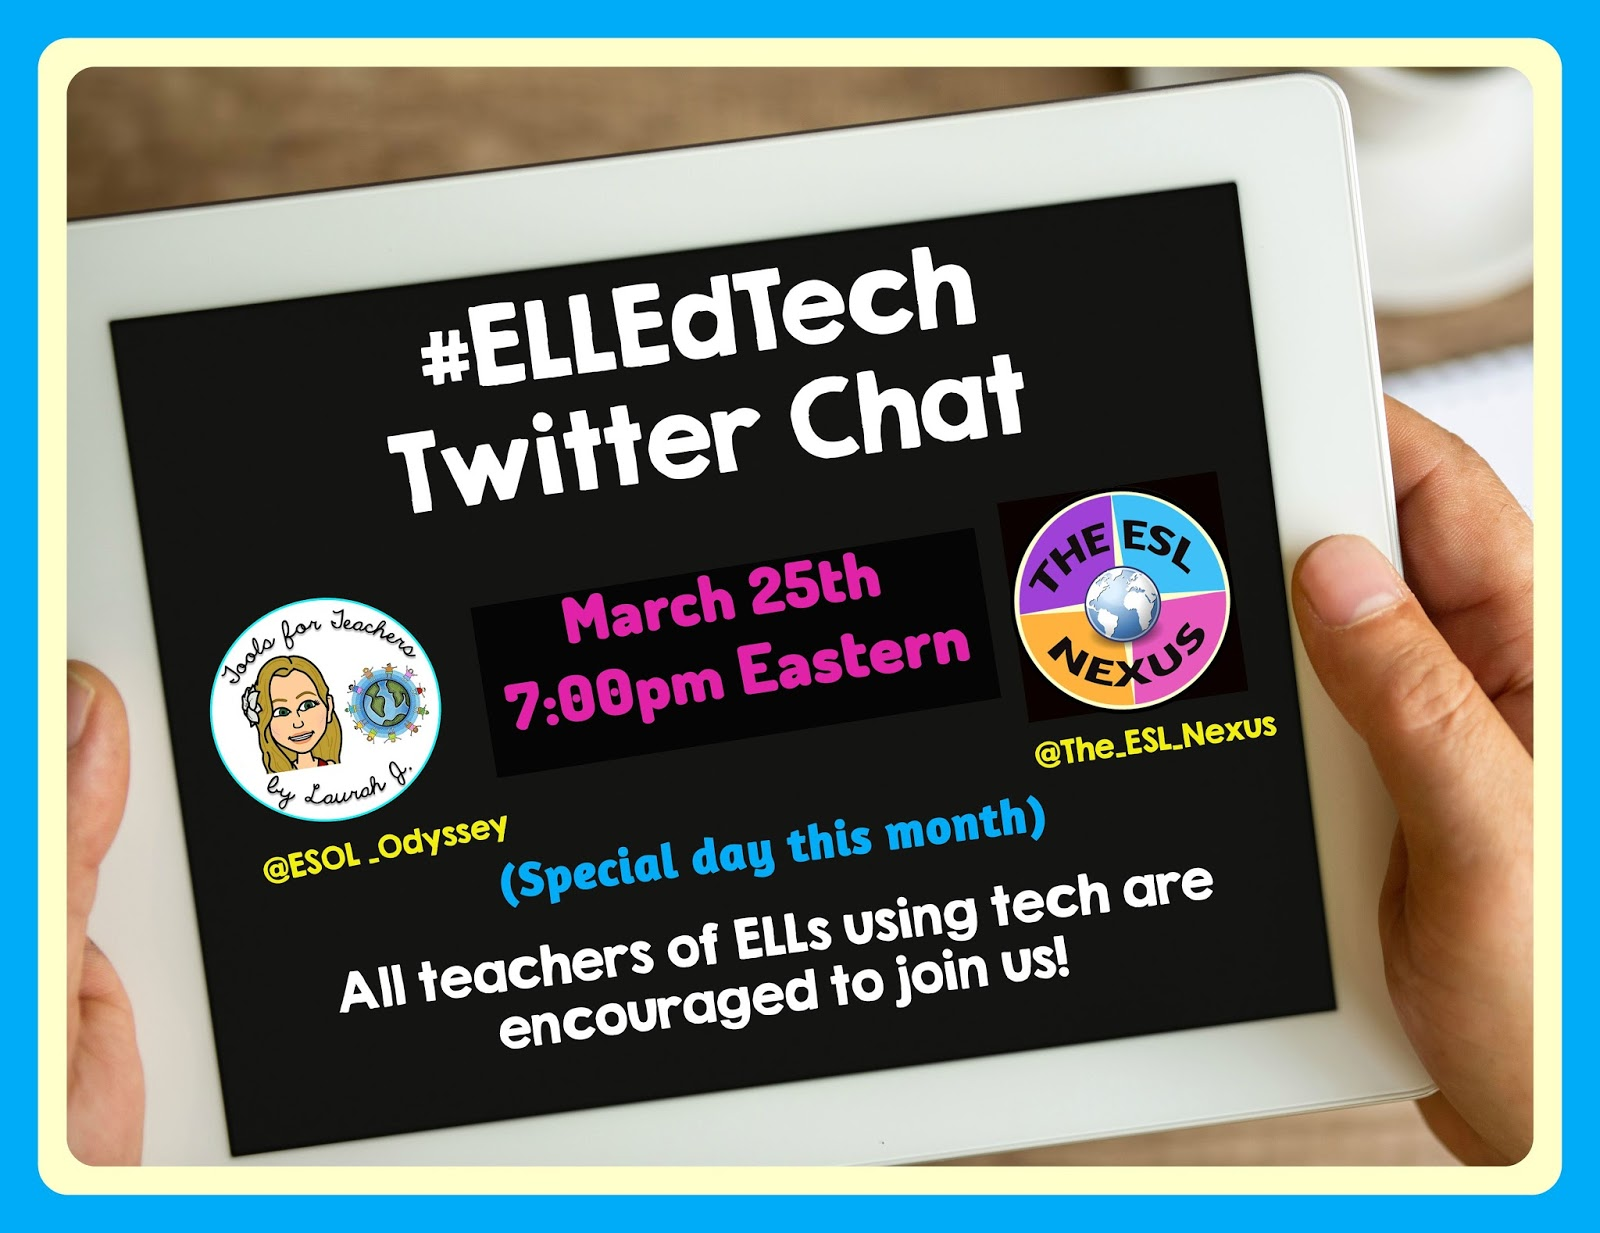 Join the March #ELLEdTech Twitter chat on March 25, 2018 to discuss using Virtual Reality with ELLs | The ESL Nexus